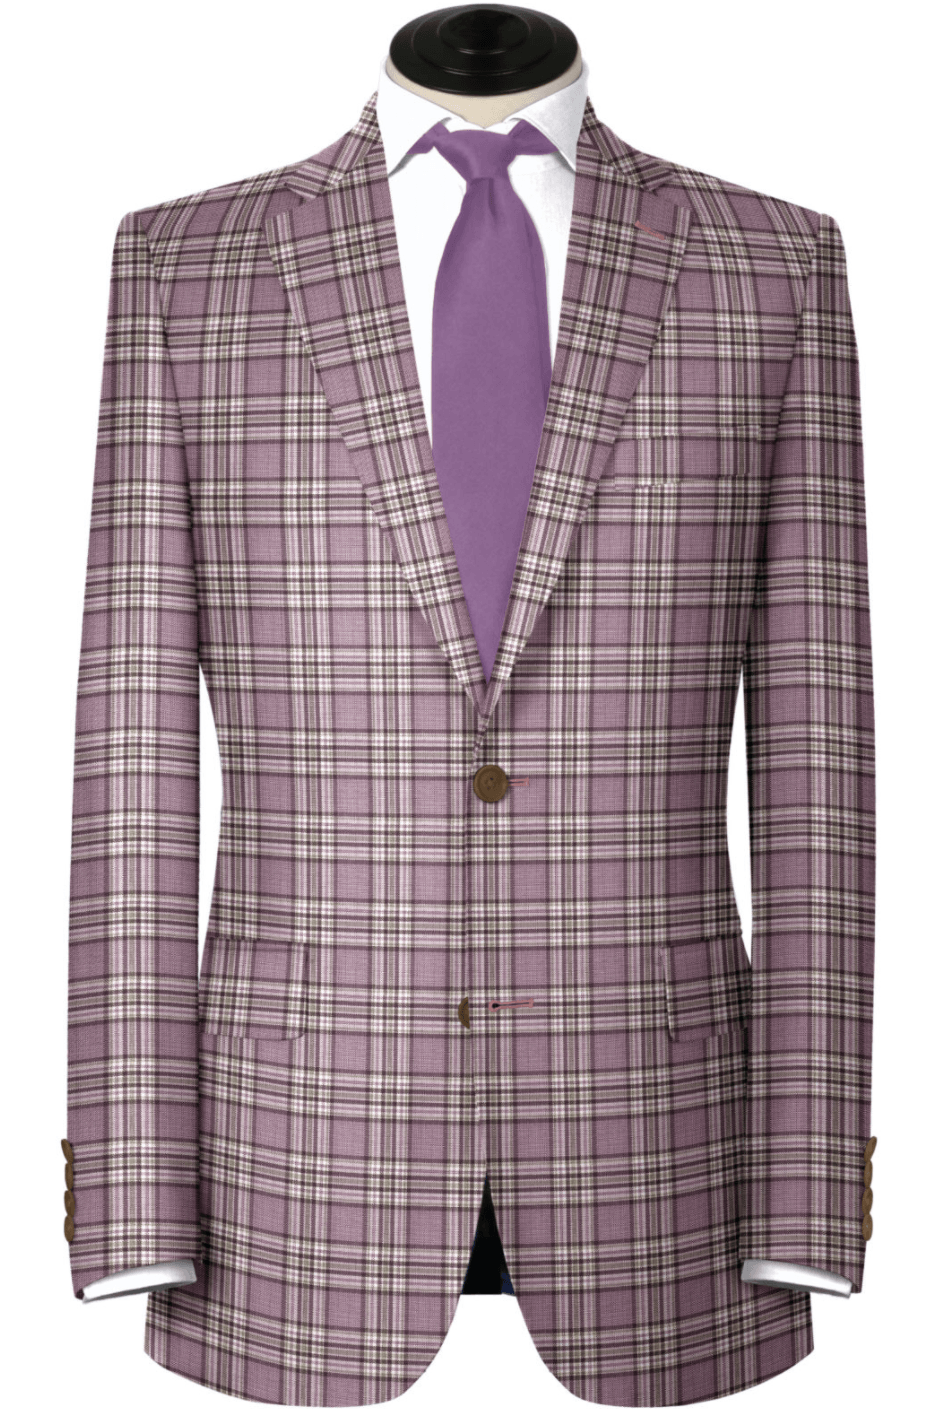 Lavander with Plum and Light Grey Plaid, Wool & Silk Blend,SPORT COATS,Gent Row, | GentRow.com